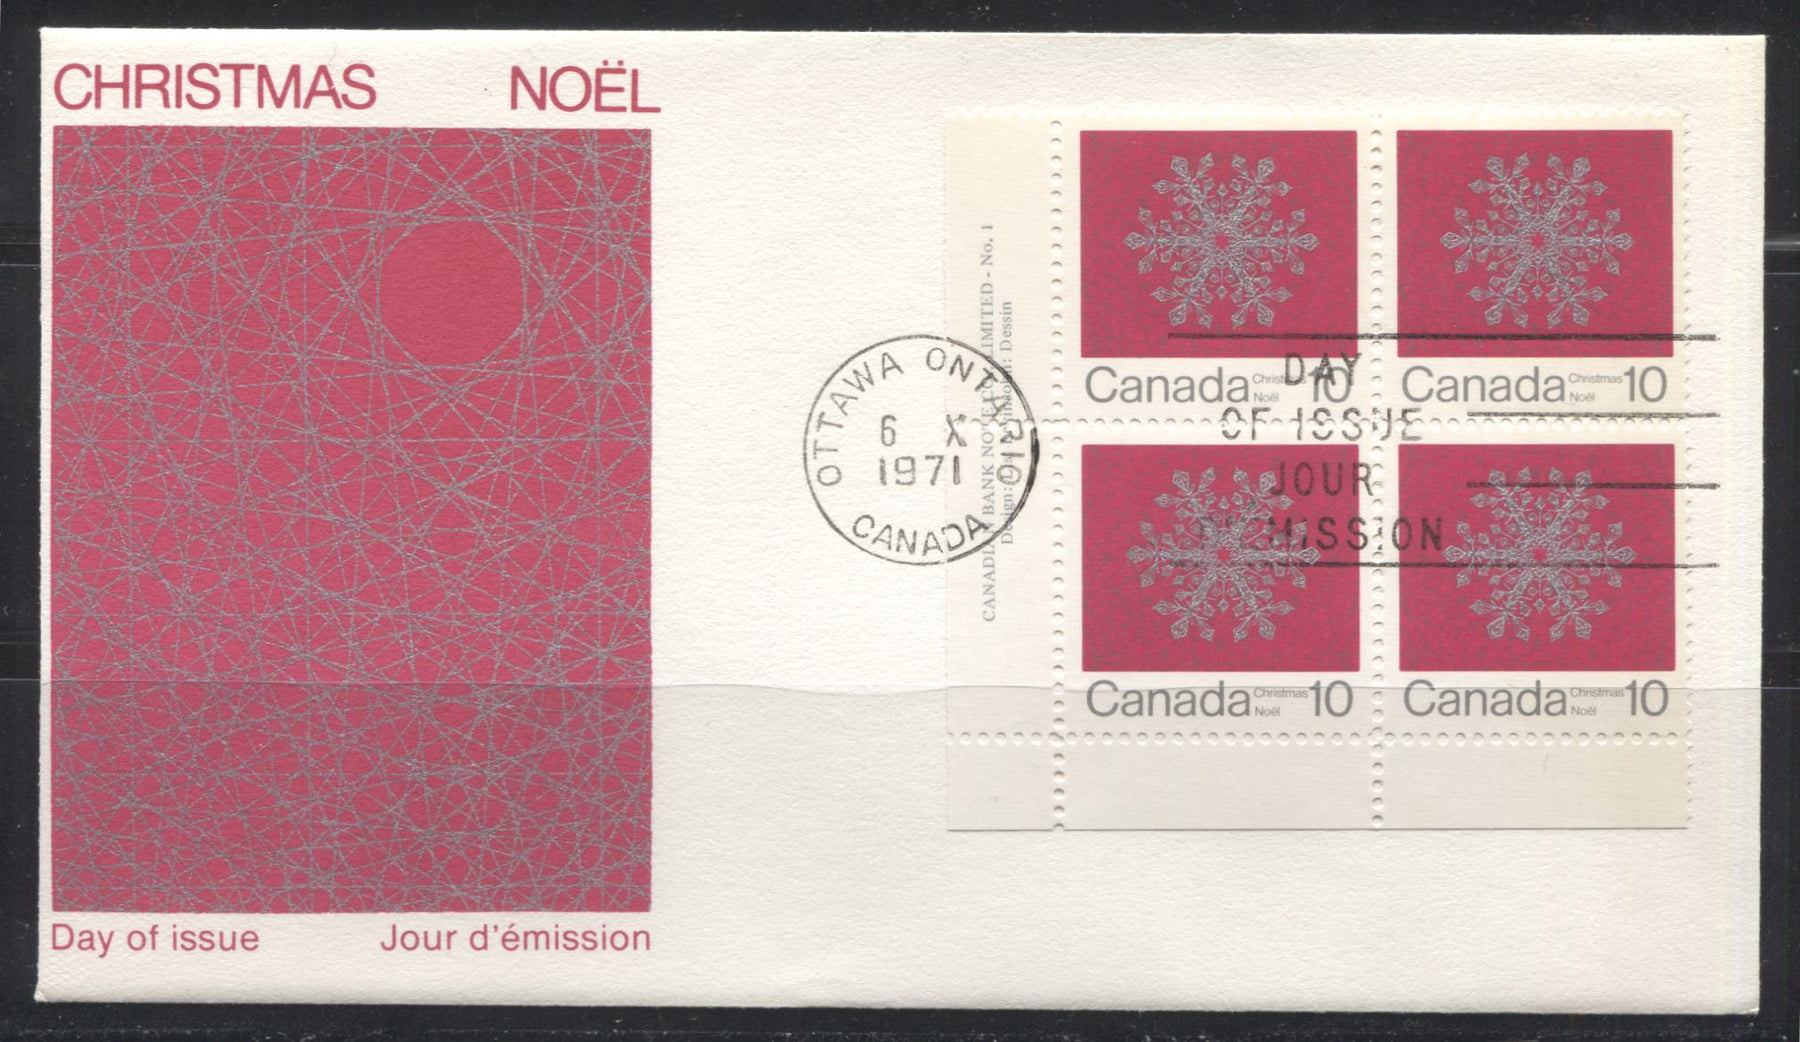 Canada #556i 10c Deep Carmine and Silver, 1971 Christmas Issue, A VF Plate Block First Day Cover on the Scarce Horizontal Ribbed Paper